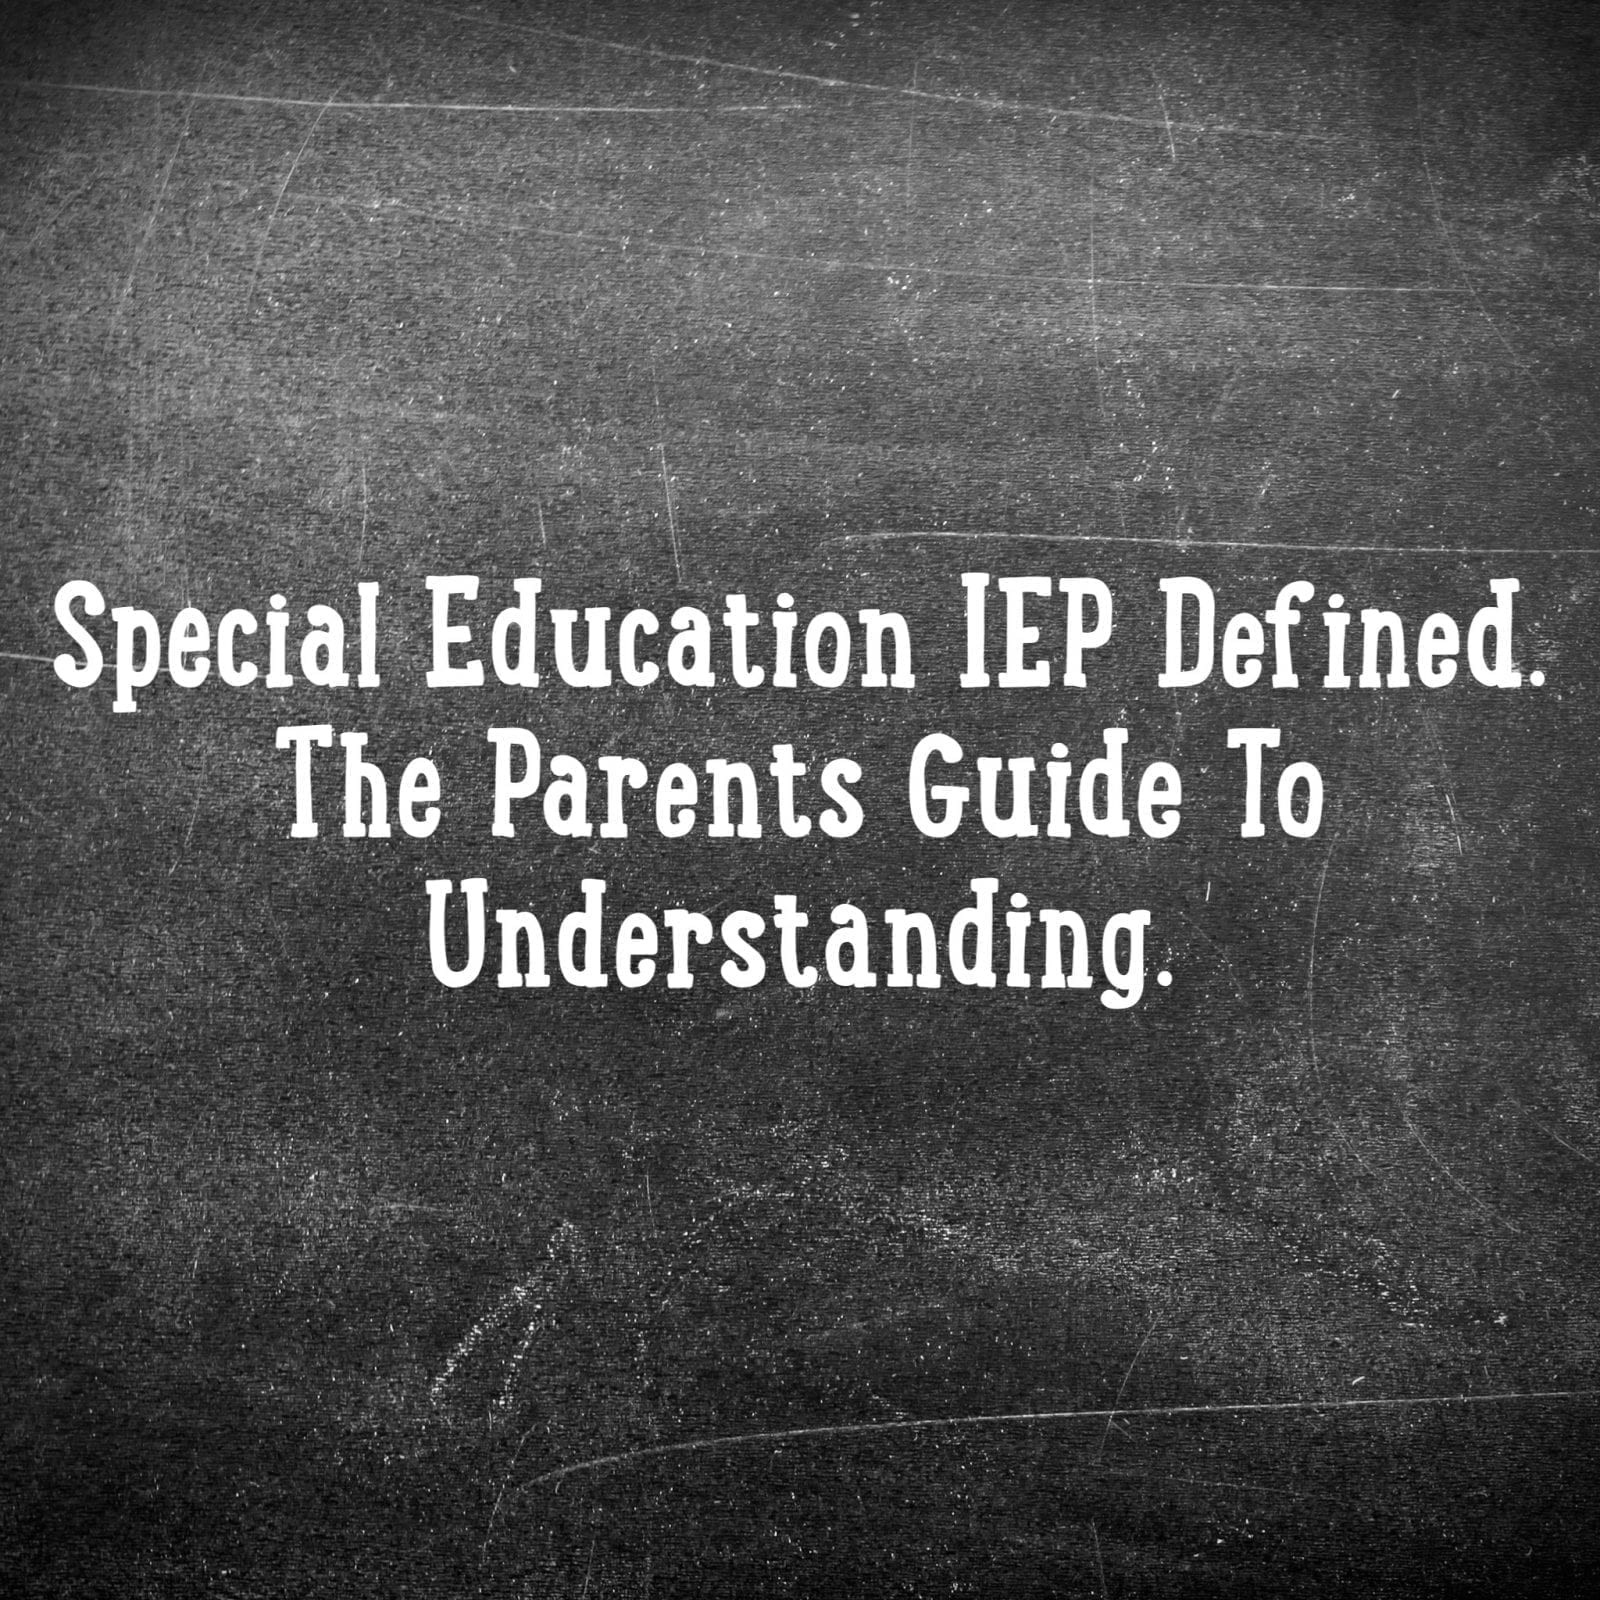 Special Education IEP Defined | Special Education Resource